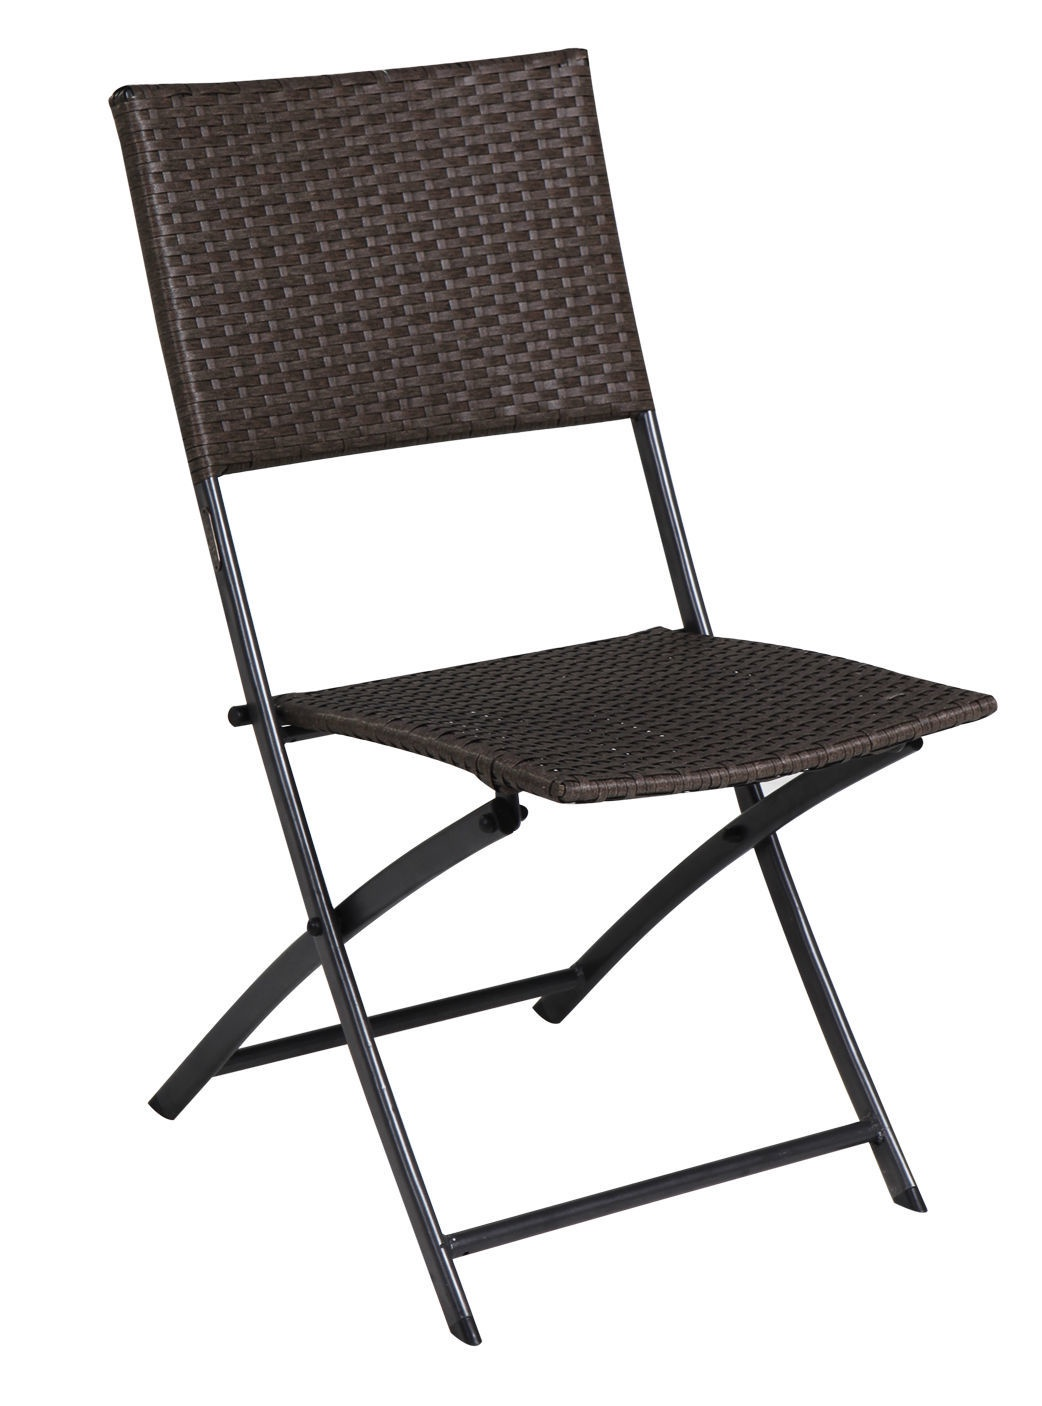 Cheap Outdoor Folding Chairs.Home4you Nico Foldable Garden Chair Brown